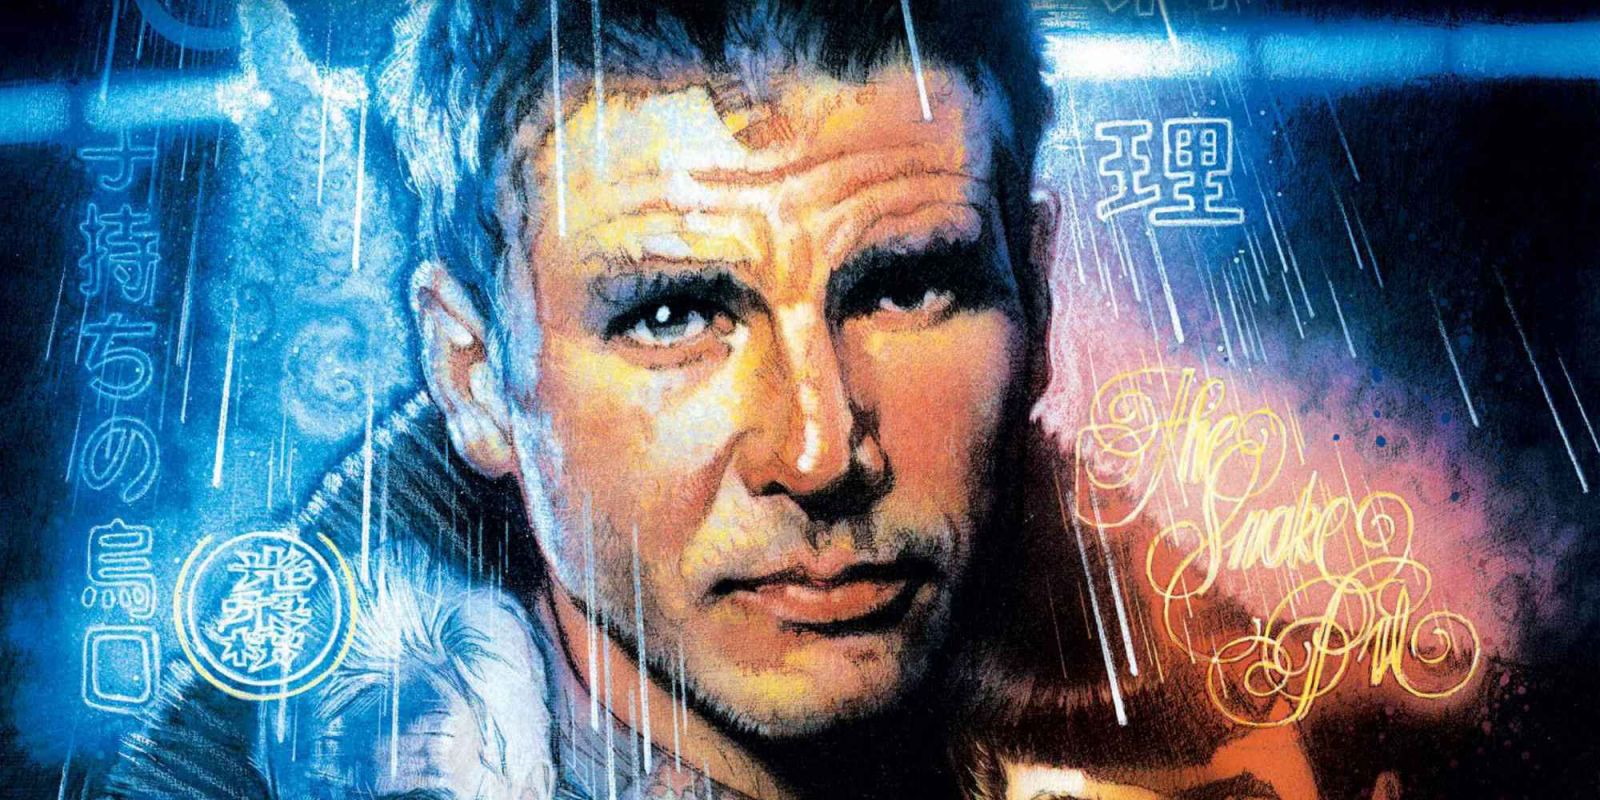 dicks androids and scotts replicants essay